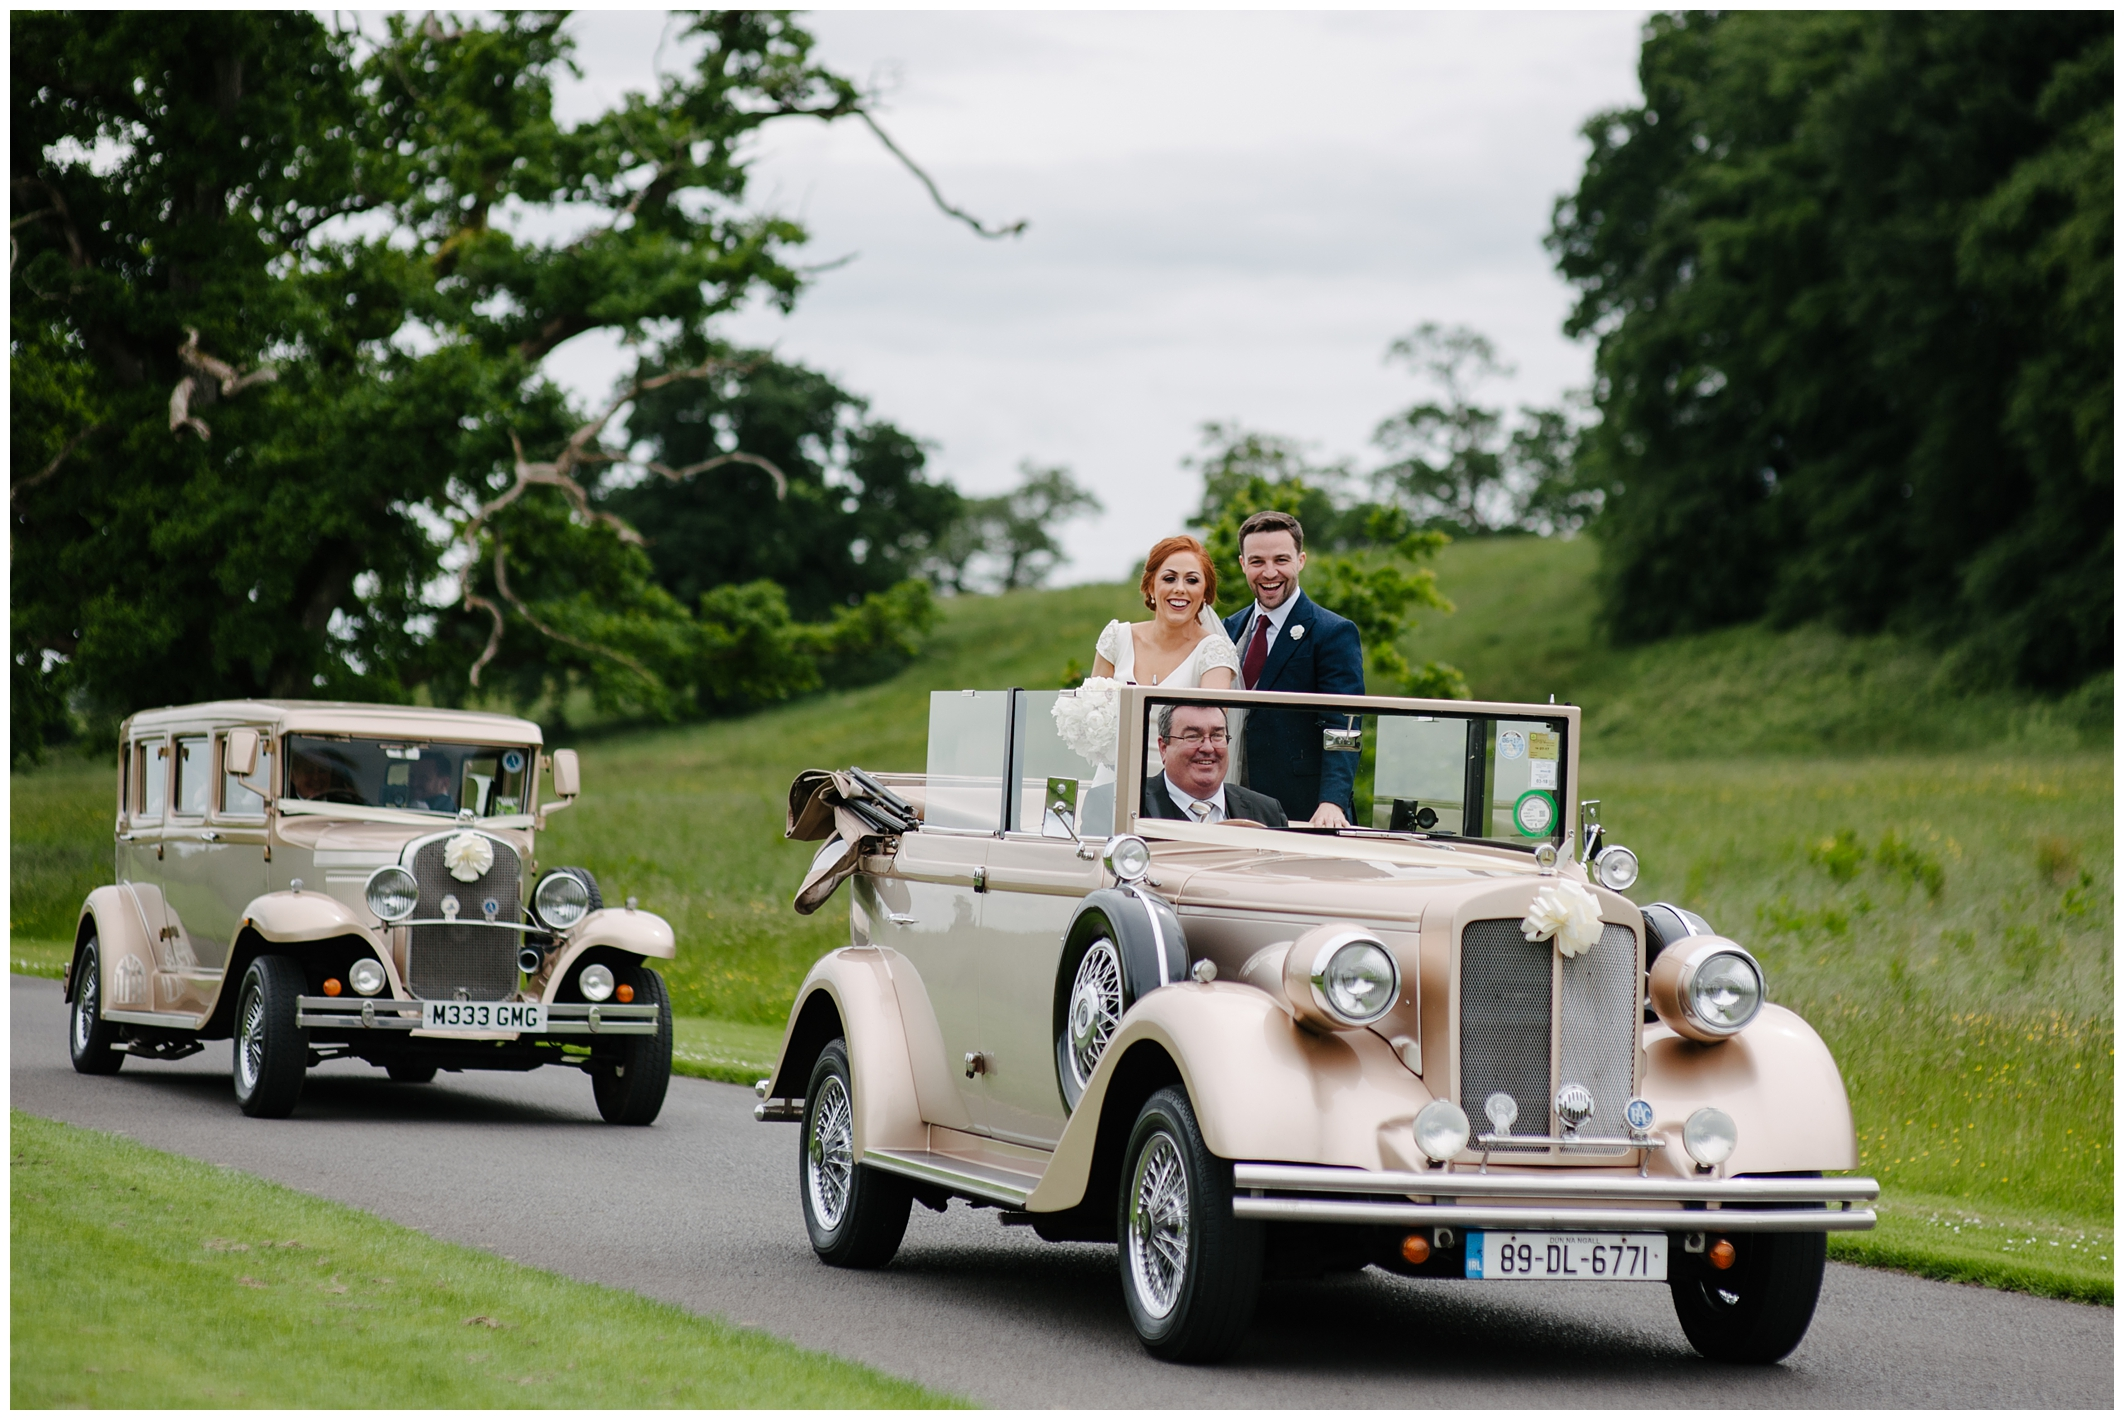 sinead_emmet_farnham_estate_wedding_jude_browne_photography_0088.jpg